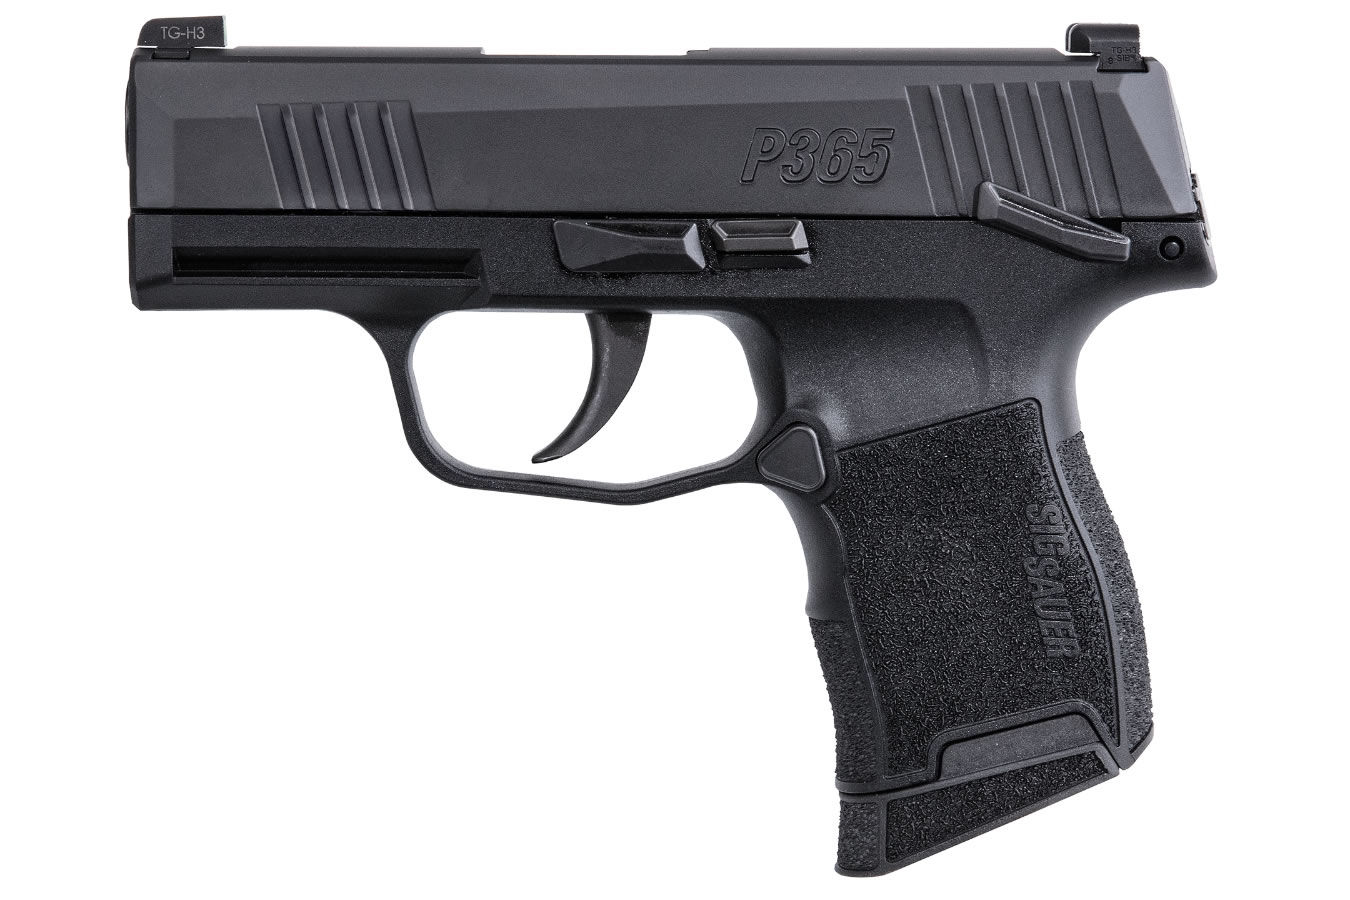 P365 9mm Micro Compact Pistol with Manual Safety